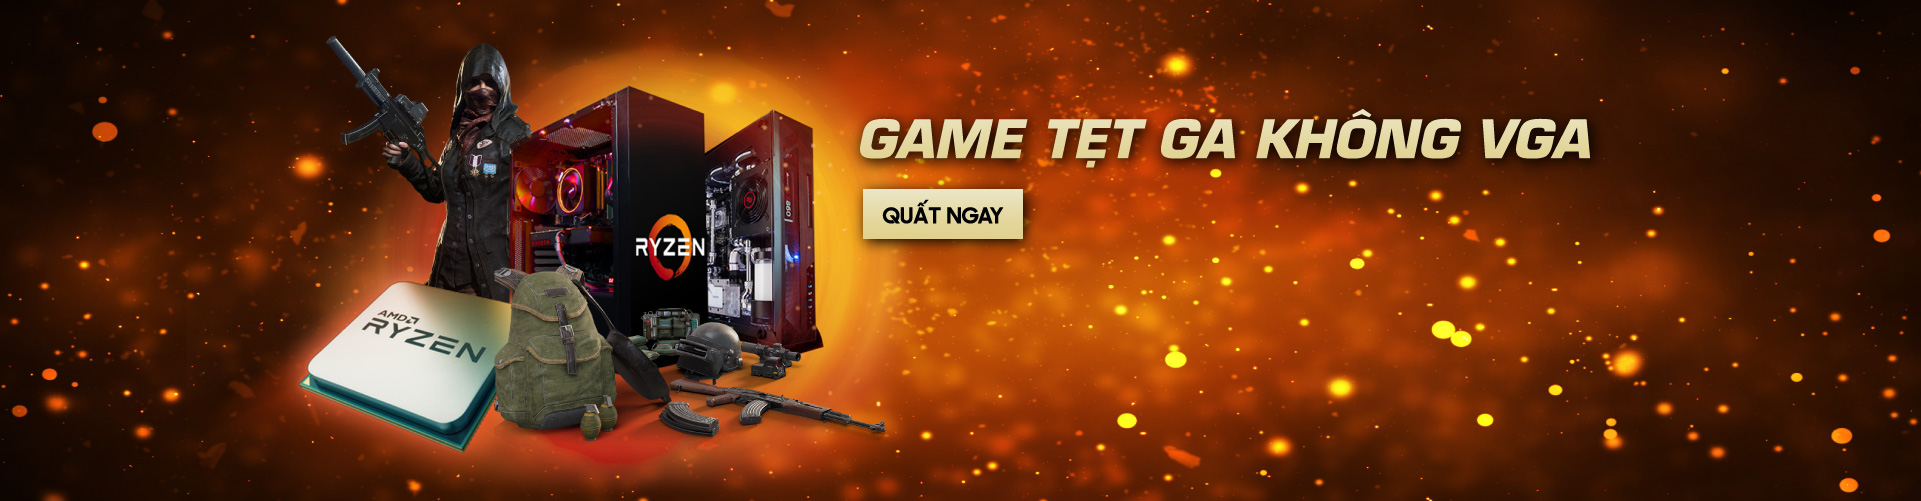 Build PC - Chiến game tẹt ga